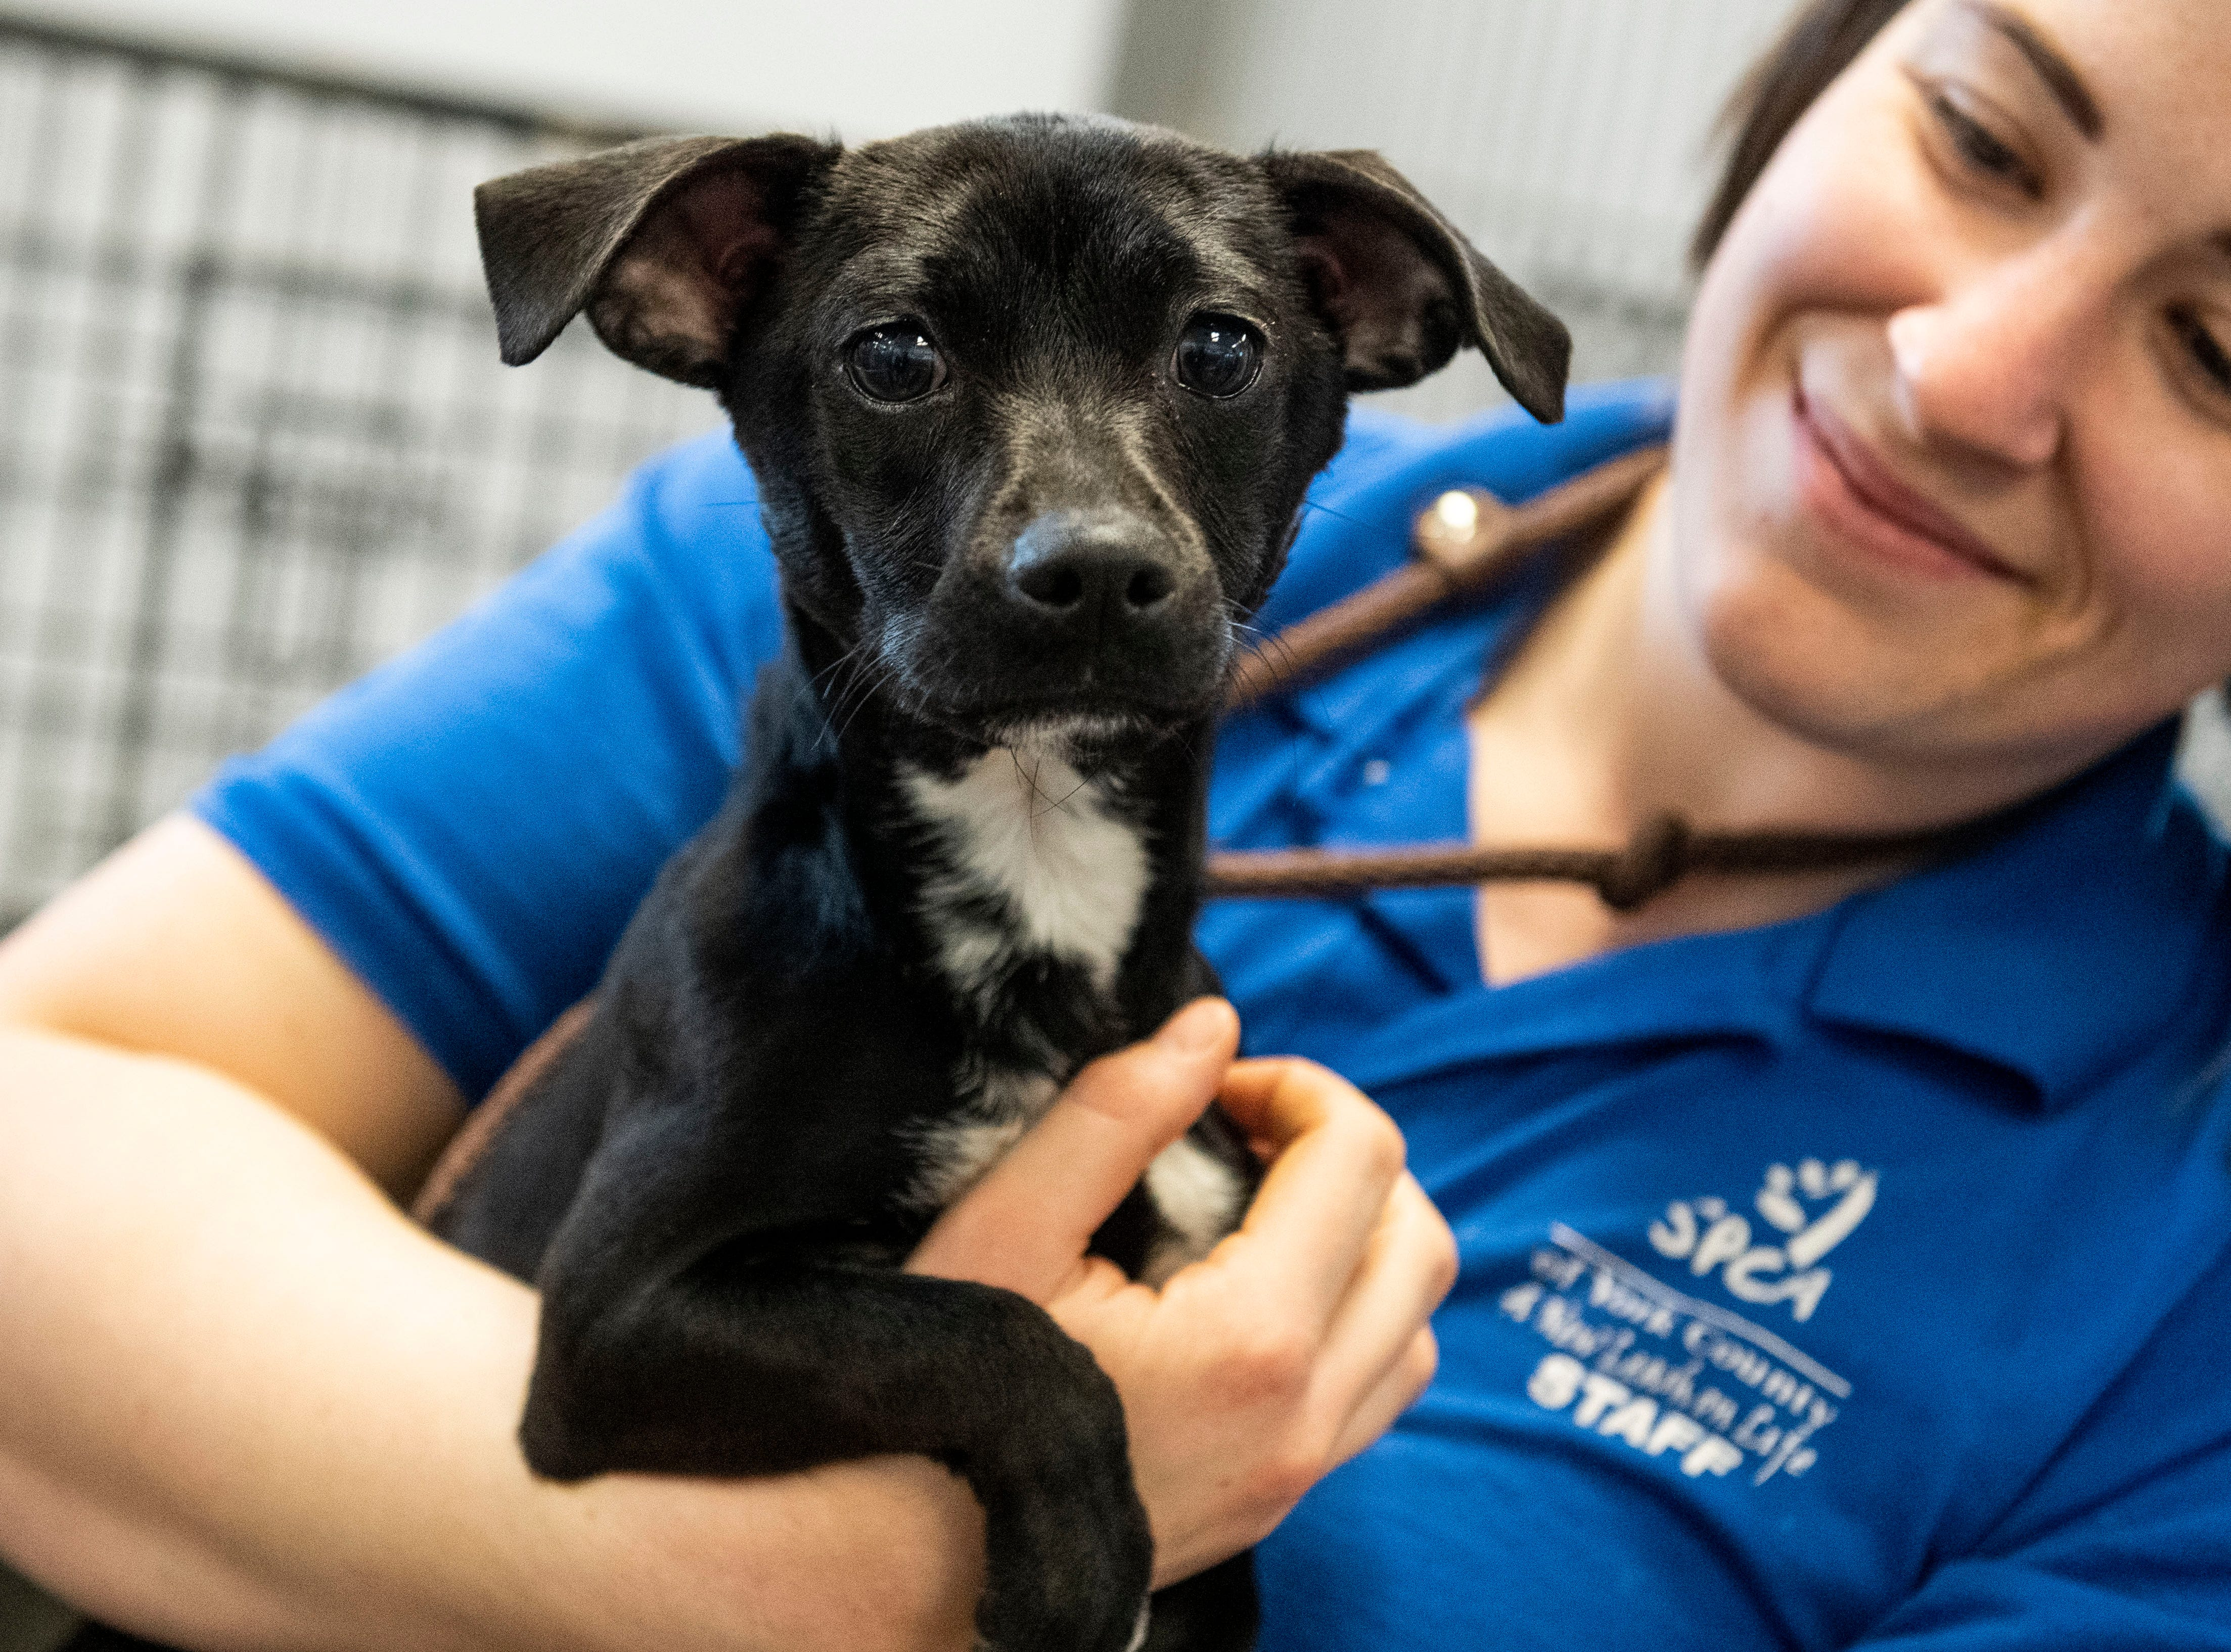 A no-name, young Chihuahua mix, at the York County SPCA, Thursday, Feb. 7, 2019. She was found in the City of York, near East Princess St.